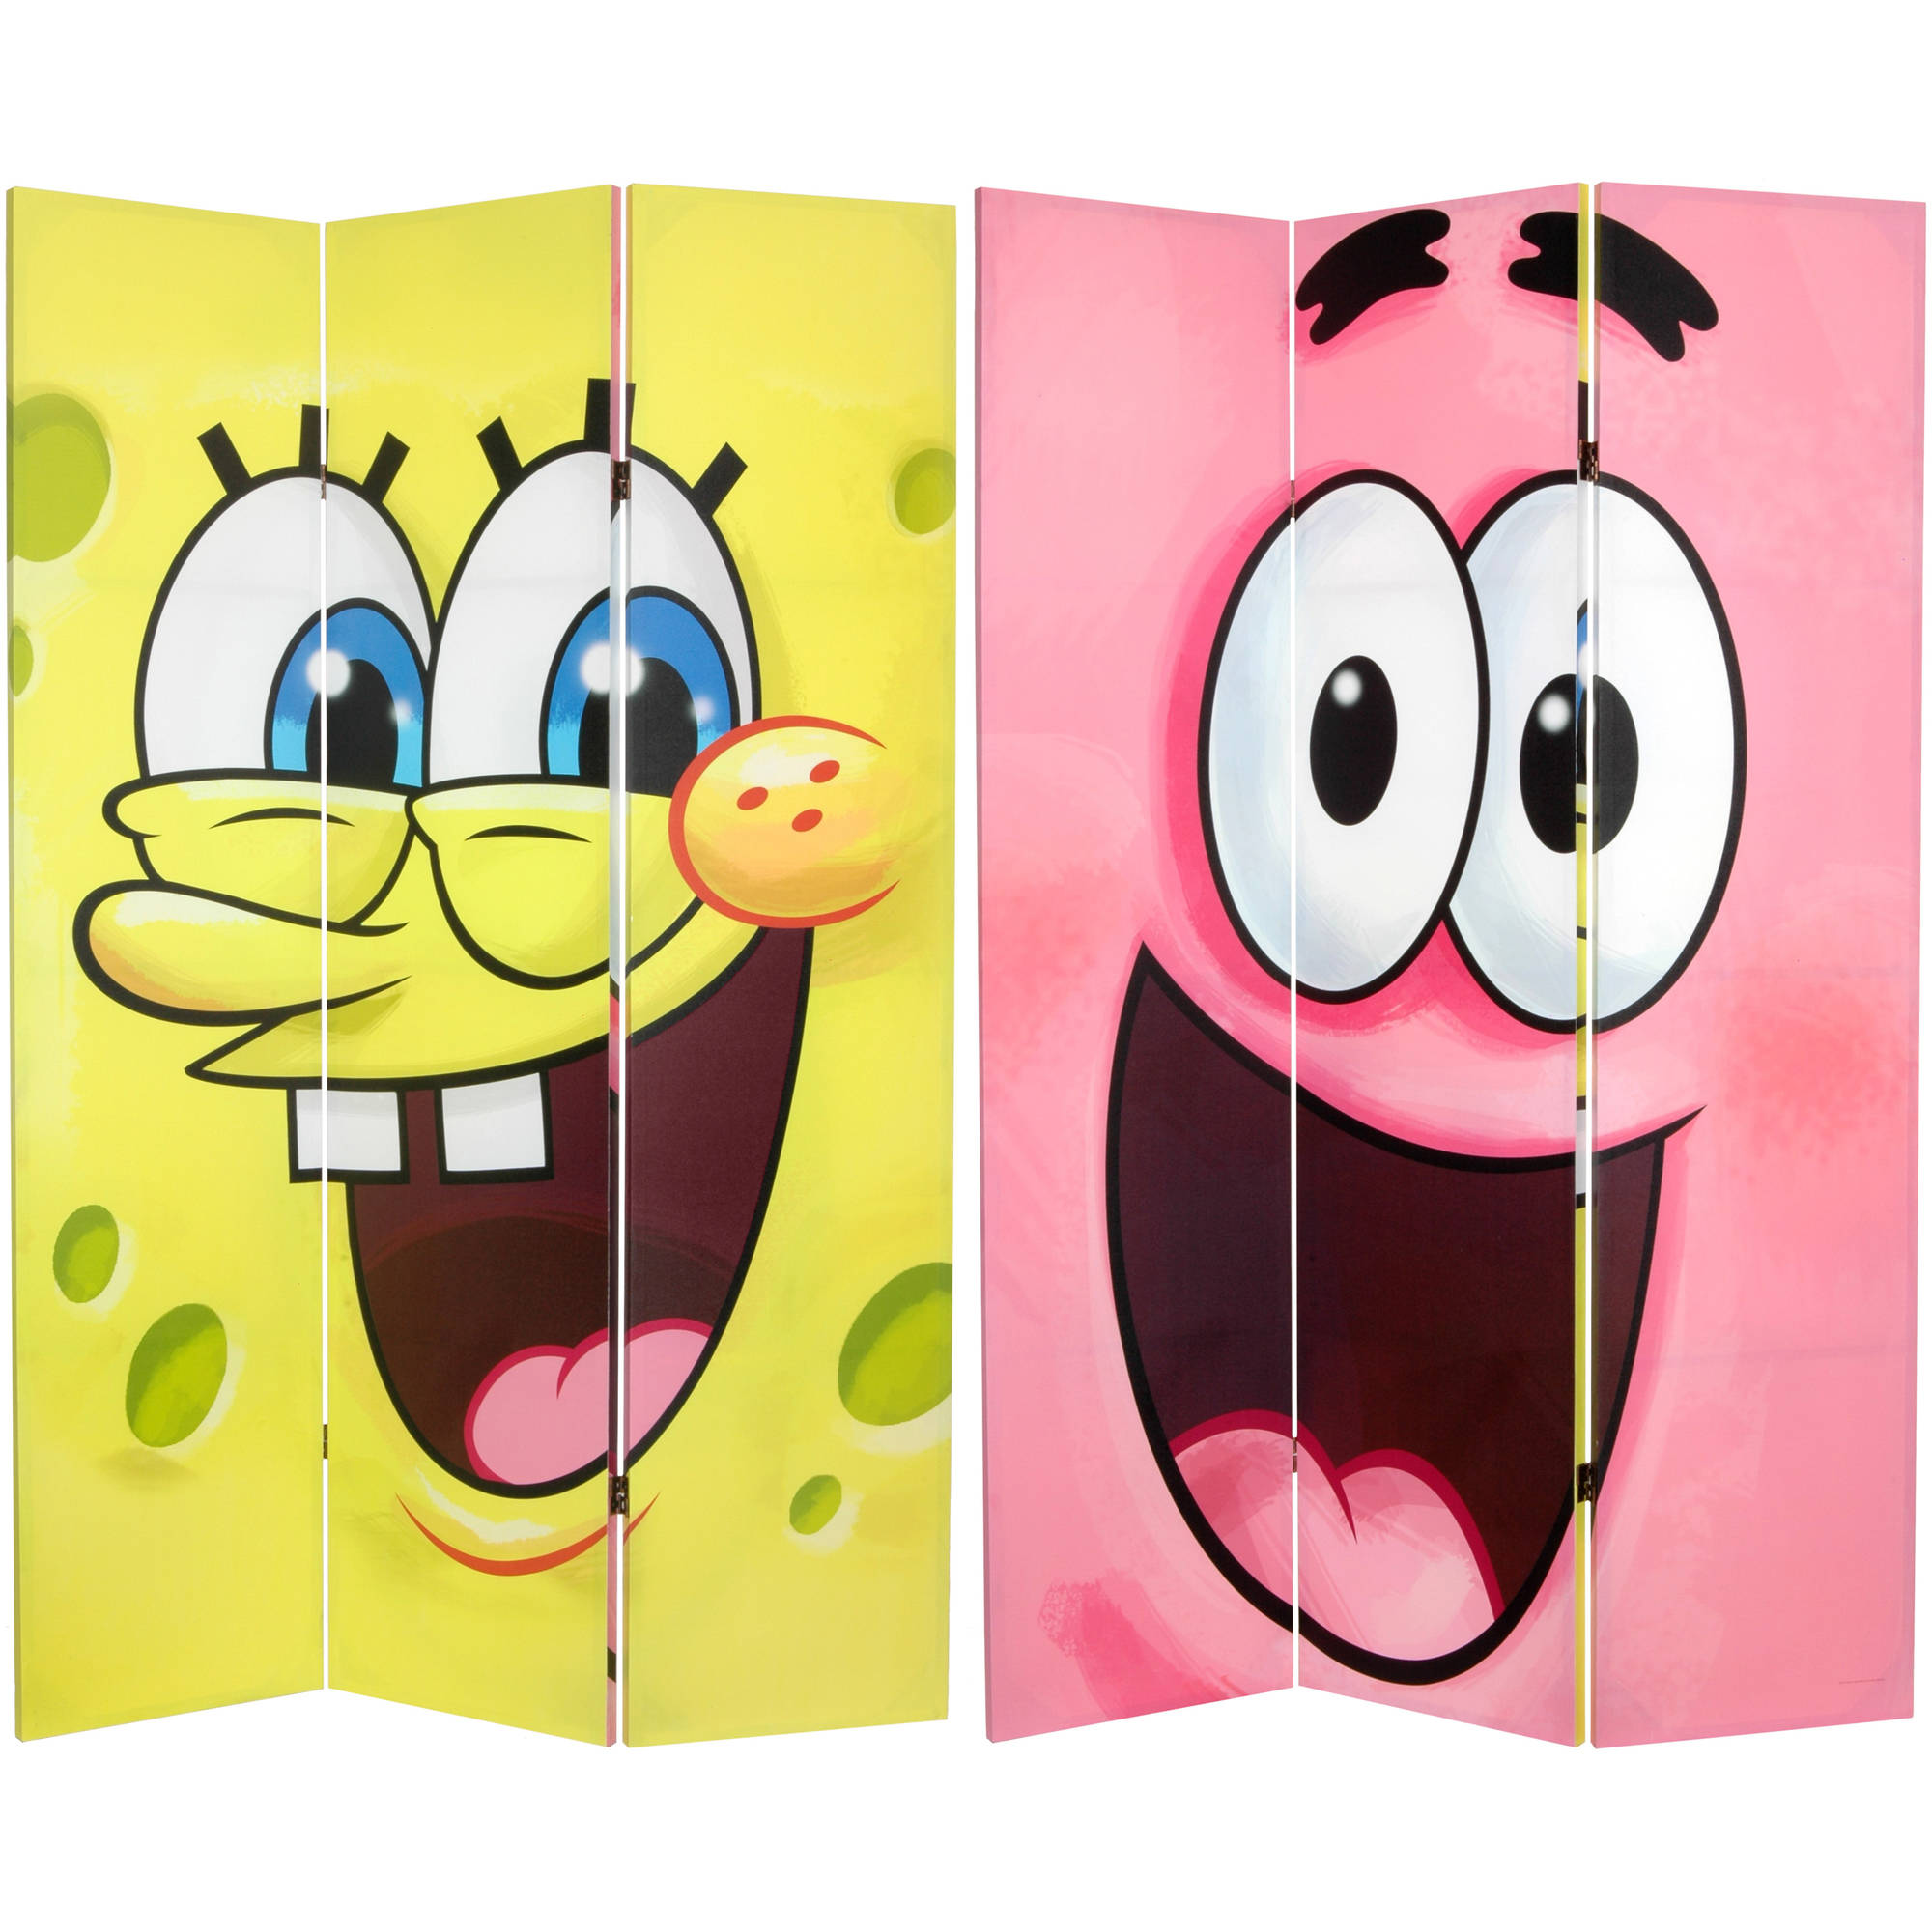 6' Tall Double Sided SpongeBob Canvas Room Divider